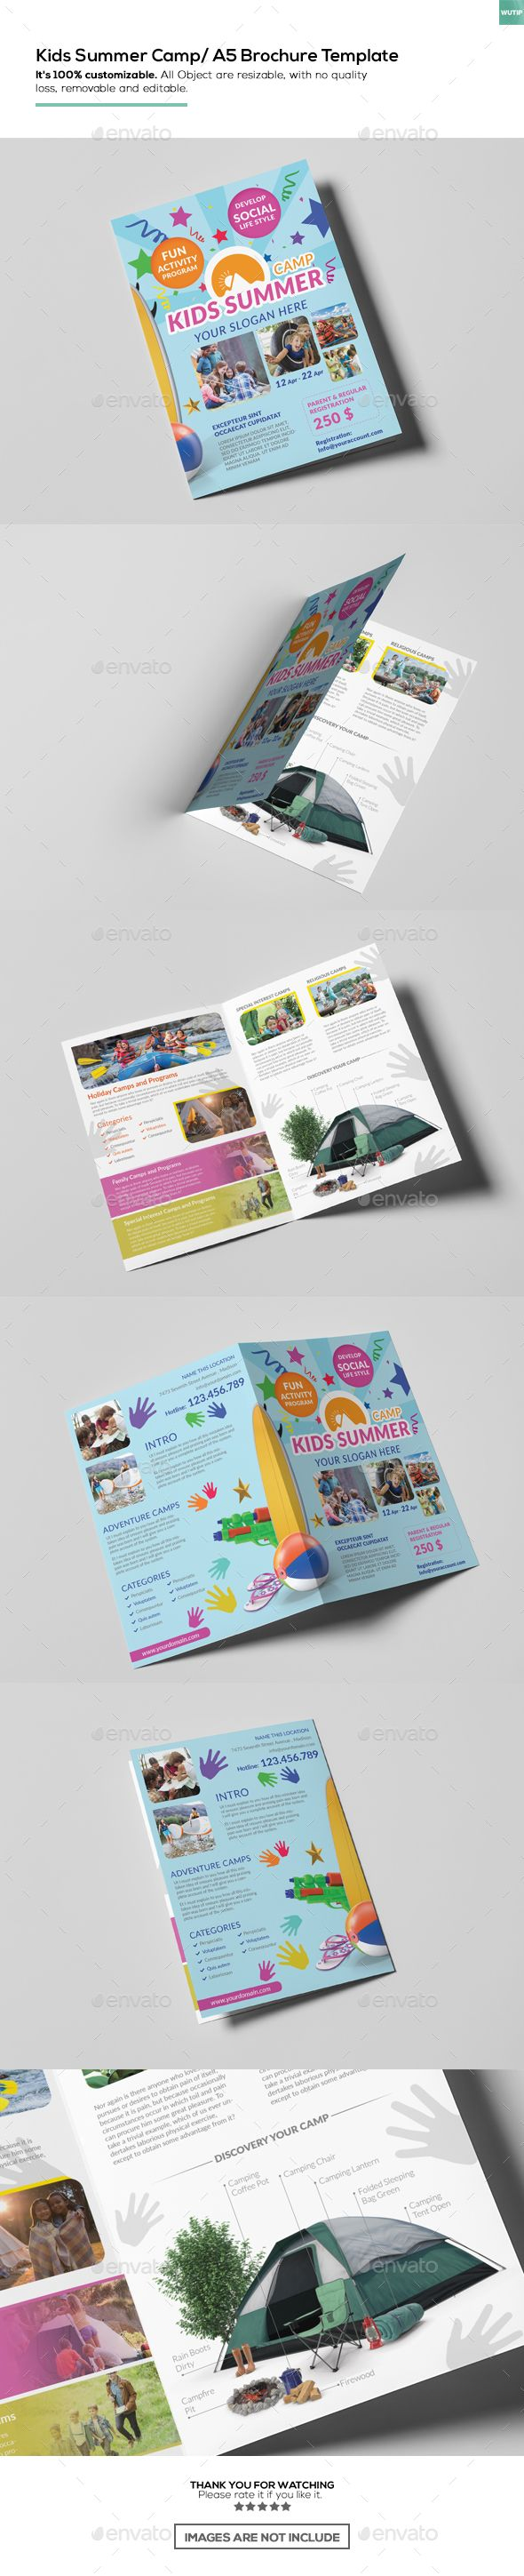 kids summer camp a5 brochure template pamphlet poster program available here - Brochure Templates For Kids